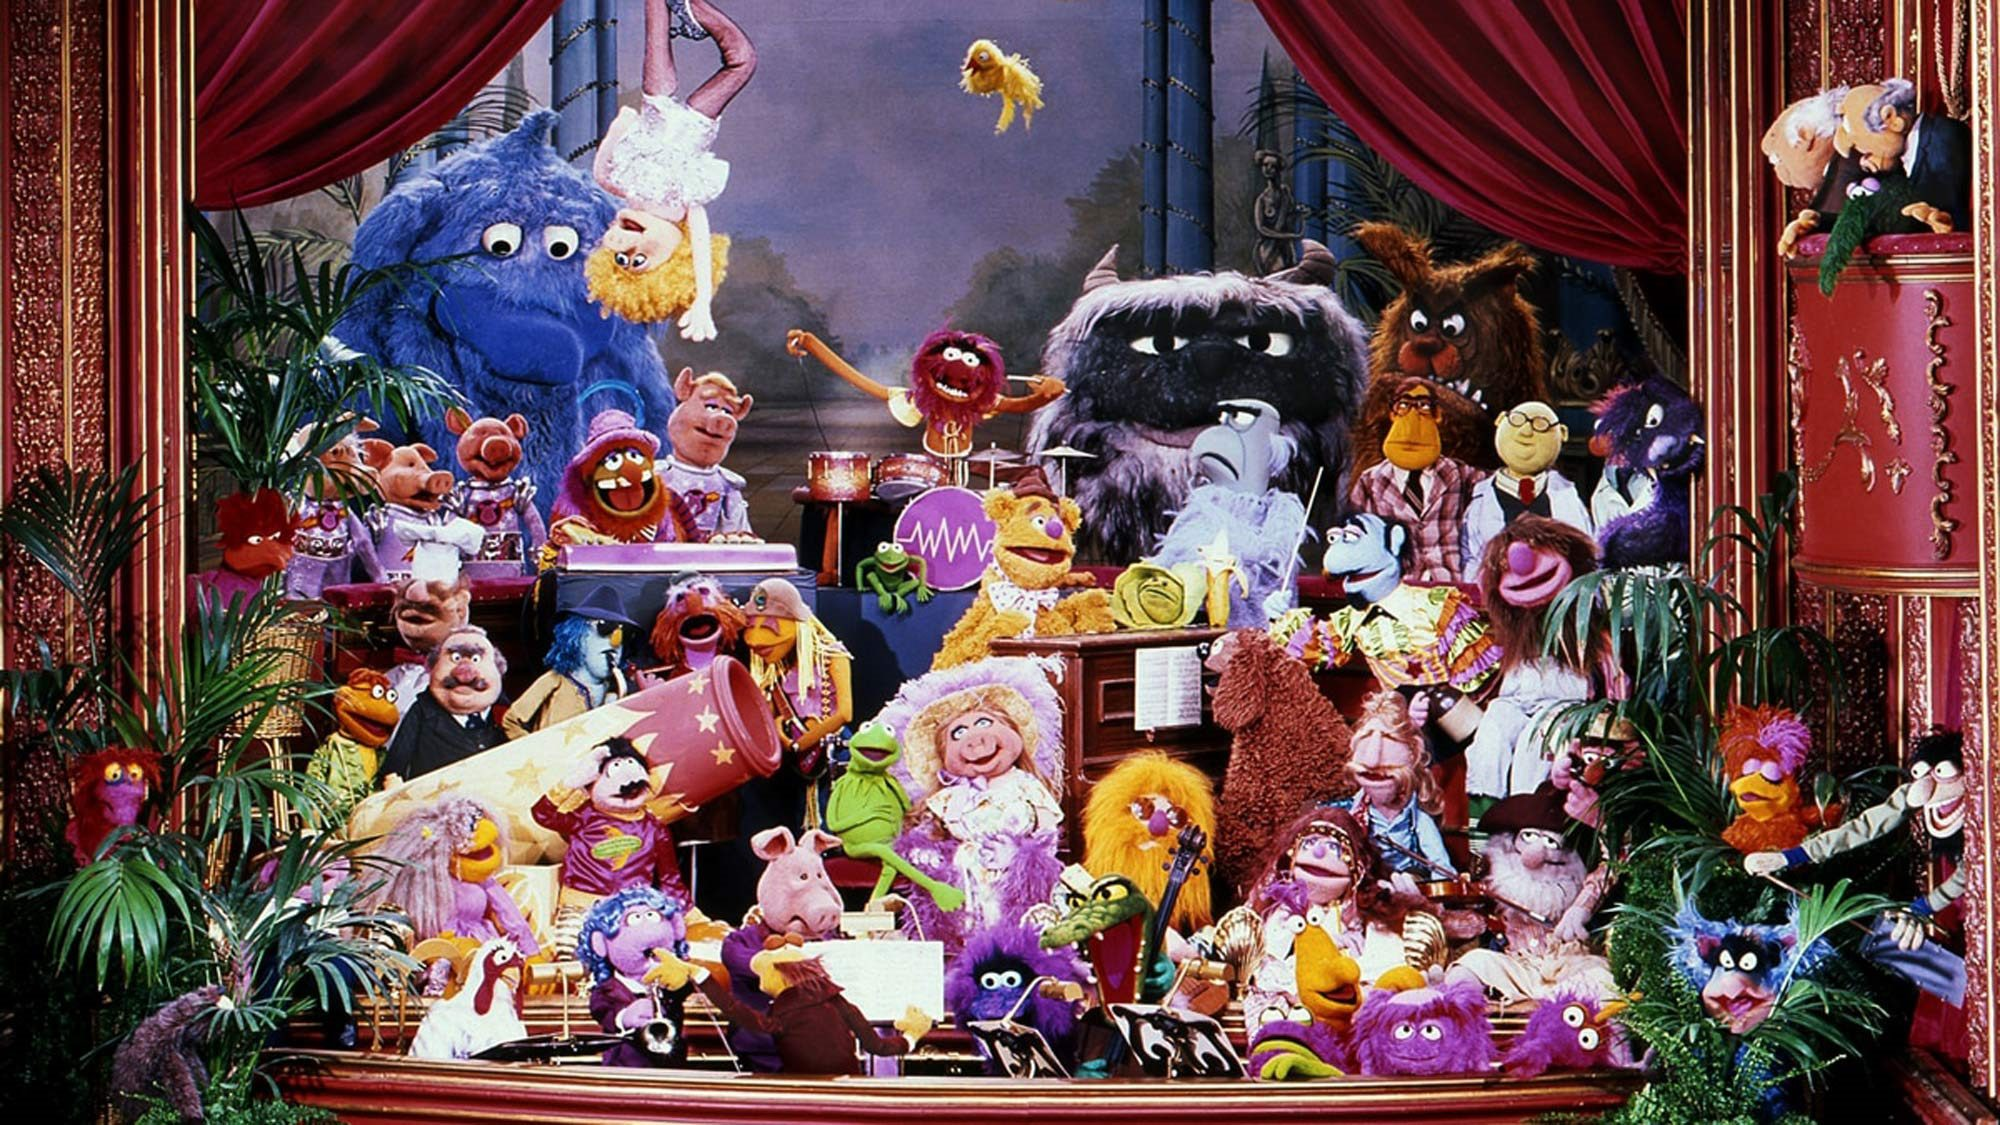 The Muppet Show Disney+ The Whole Gang